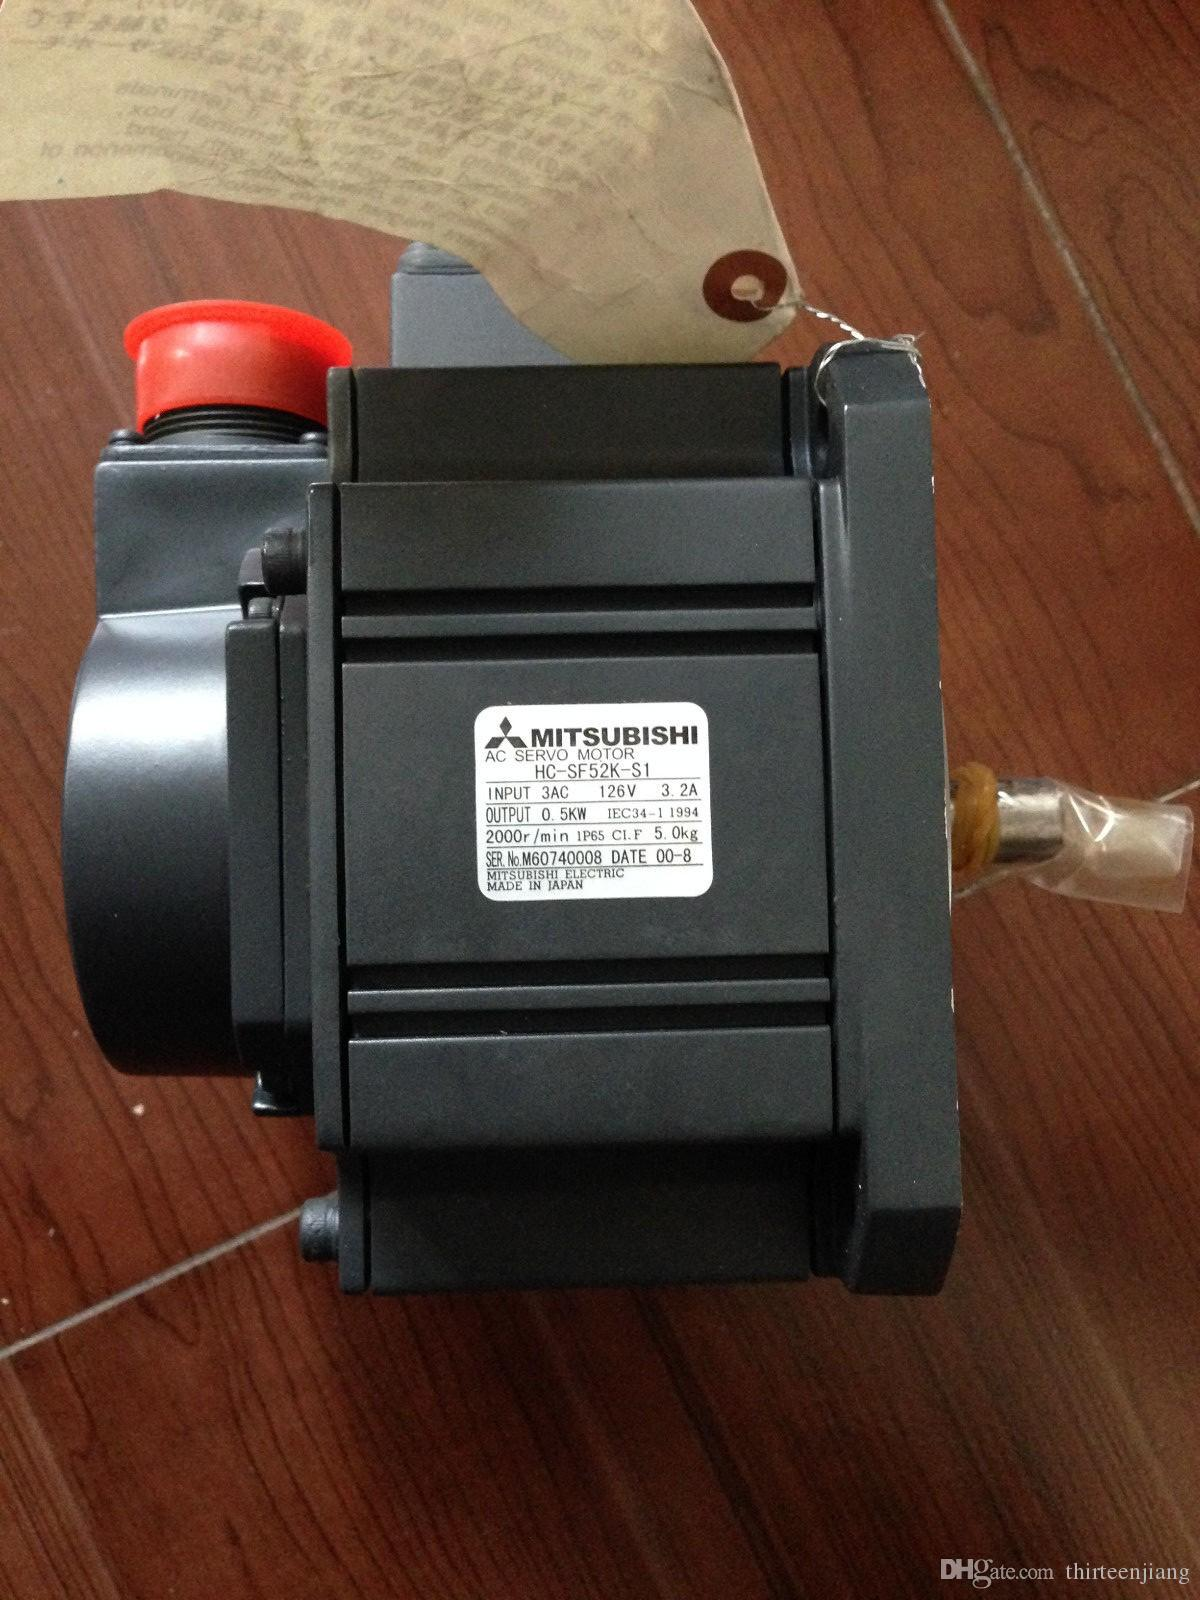 3 phase ac motor Mitsubishi HC-SF52K-S1 Industrial Electric Servo Motor 500W NEW in stock New Free Expedited Shipping